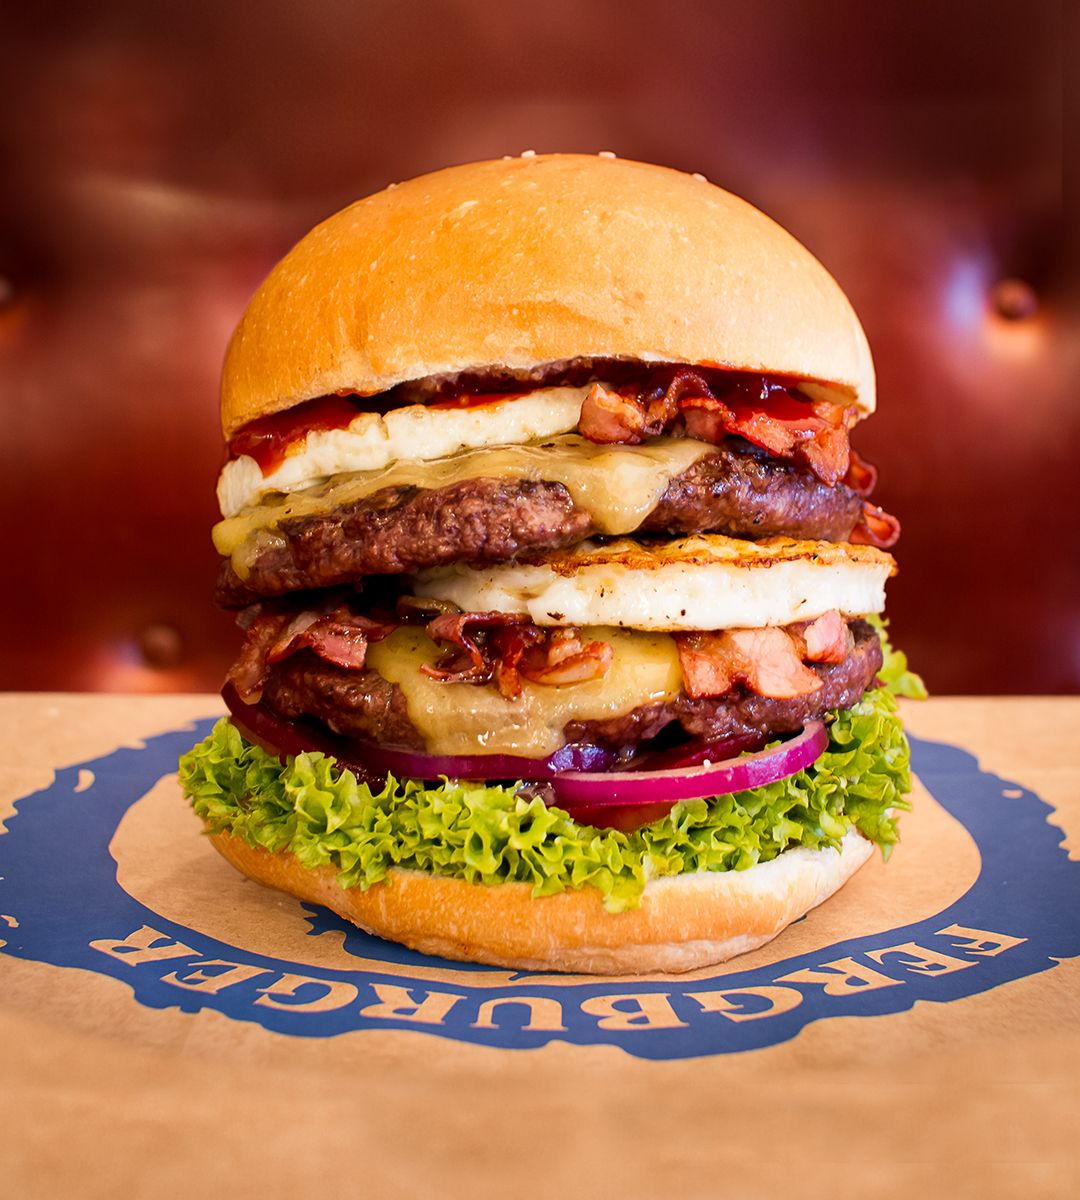 Best burgers from around the world